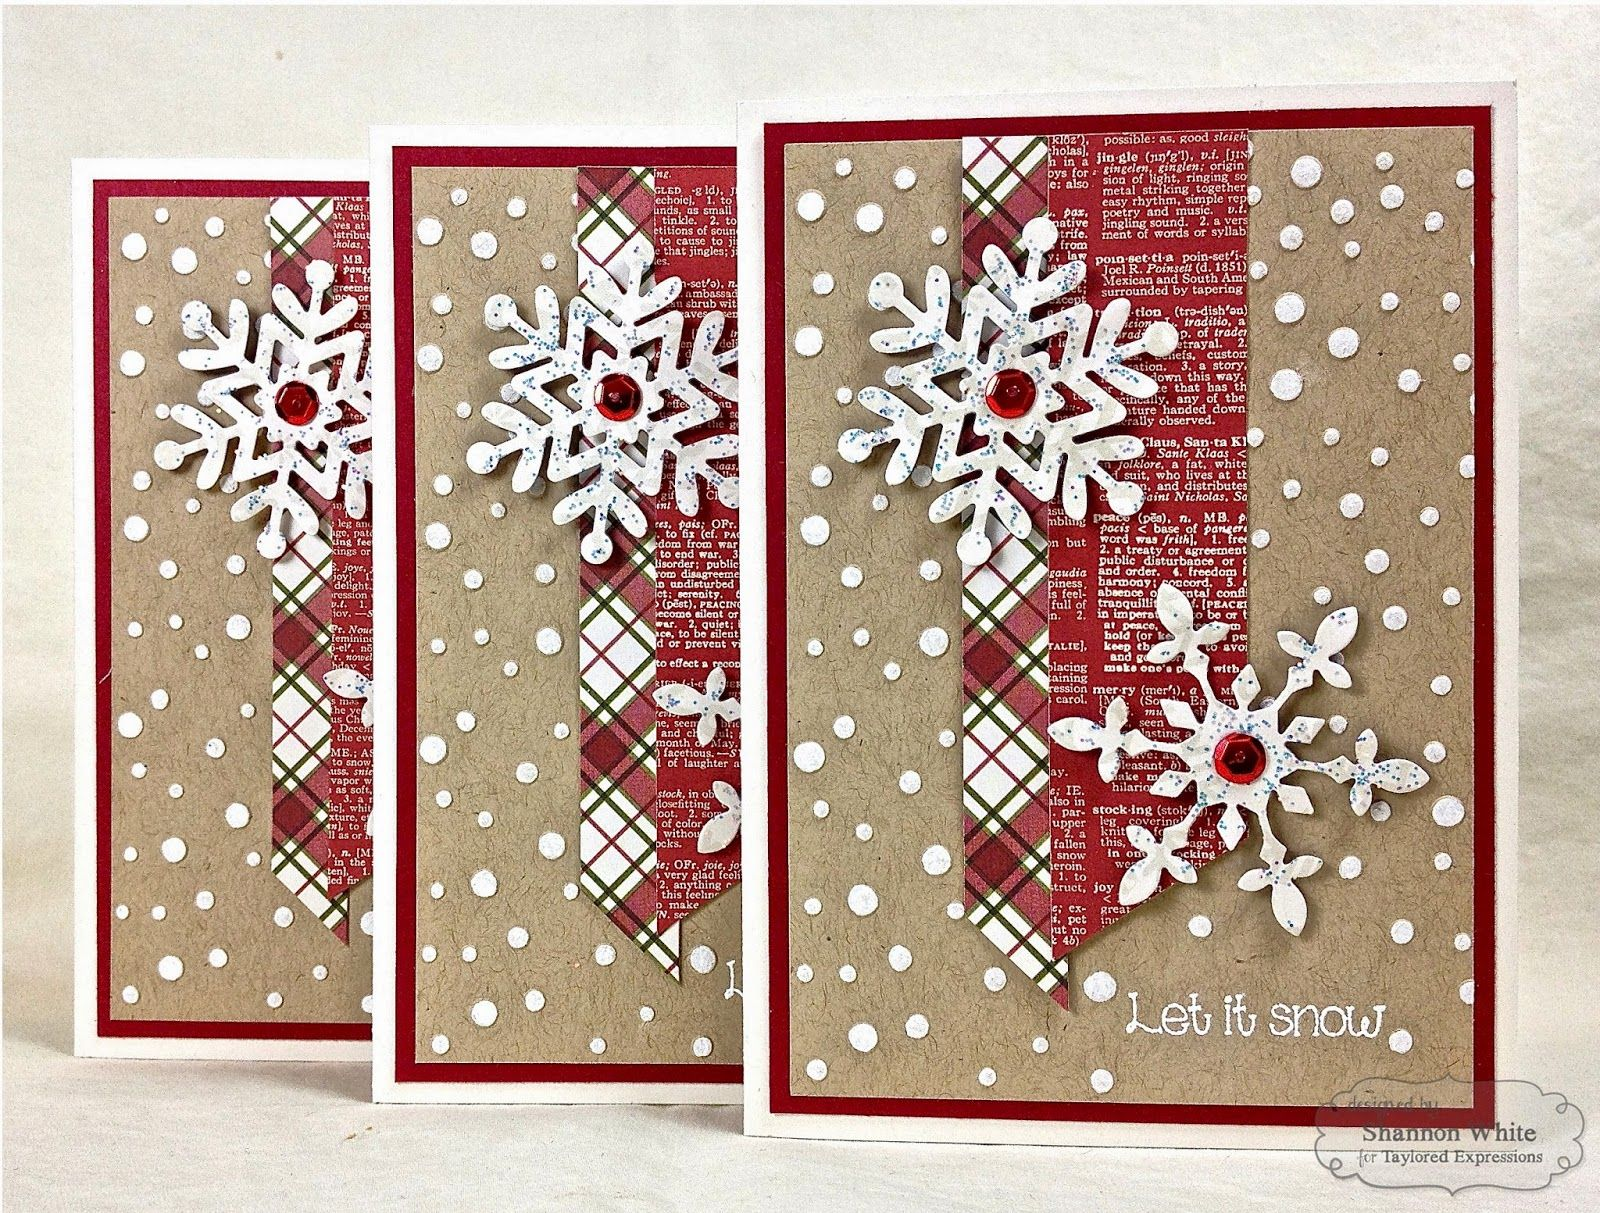 Enchanted Ladybug Creations: Let It Snow - Taylored Expressions Colored Dry Embossing! 8-)